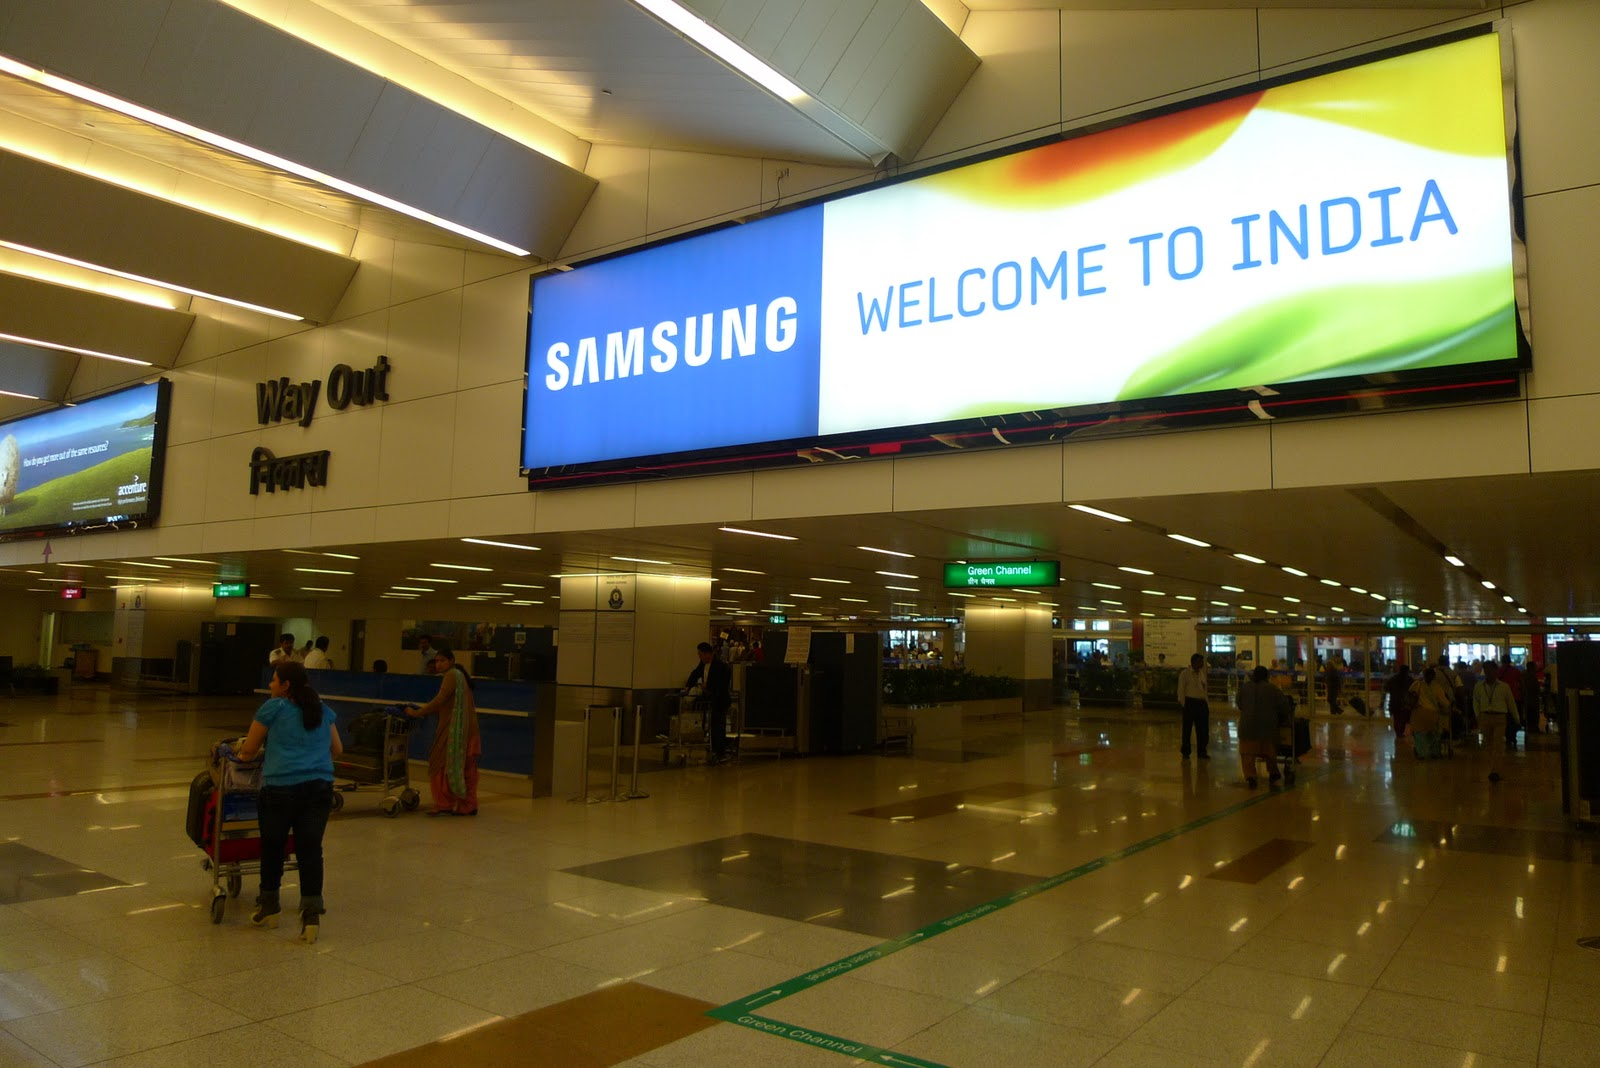 welcome-to-India-at-Indira-Gandhi-International-Airport